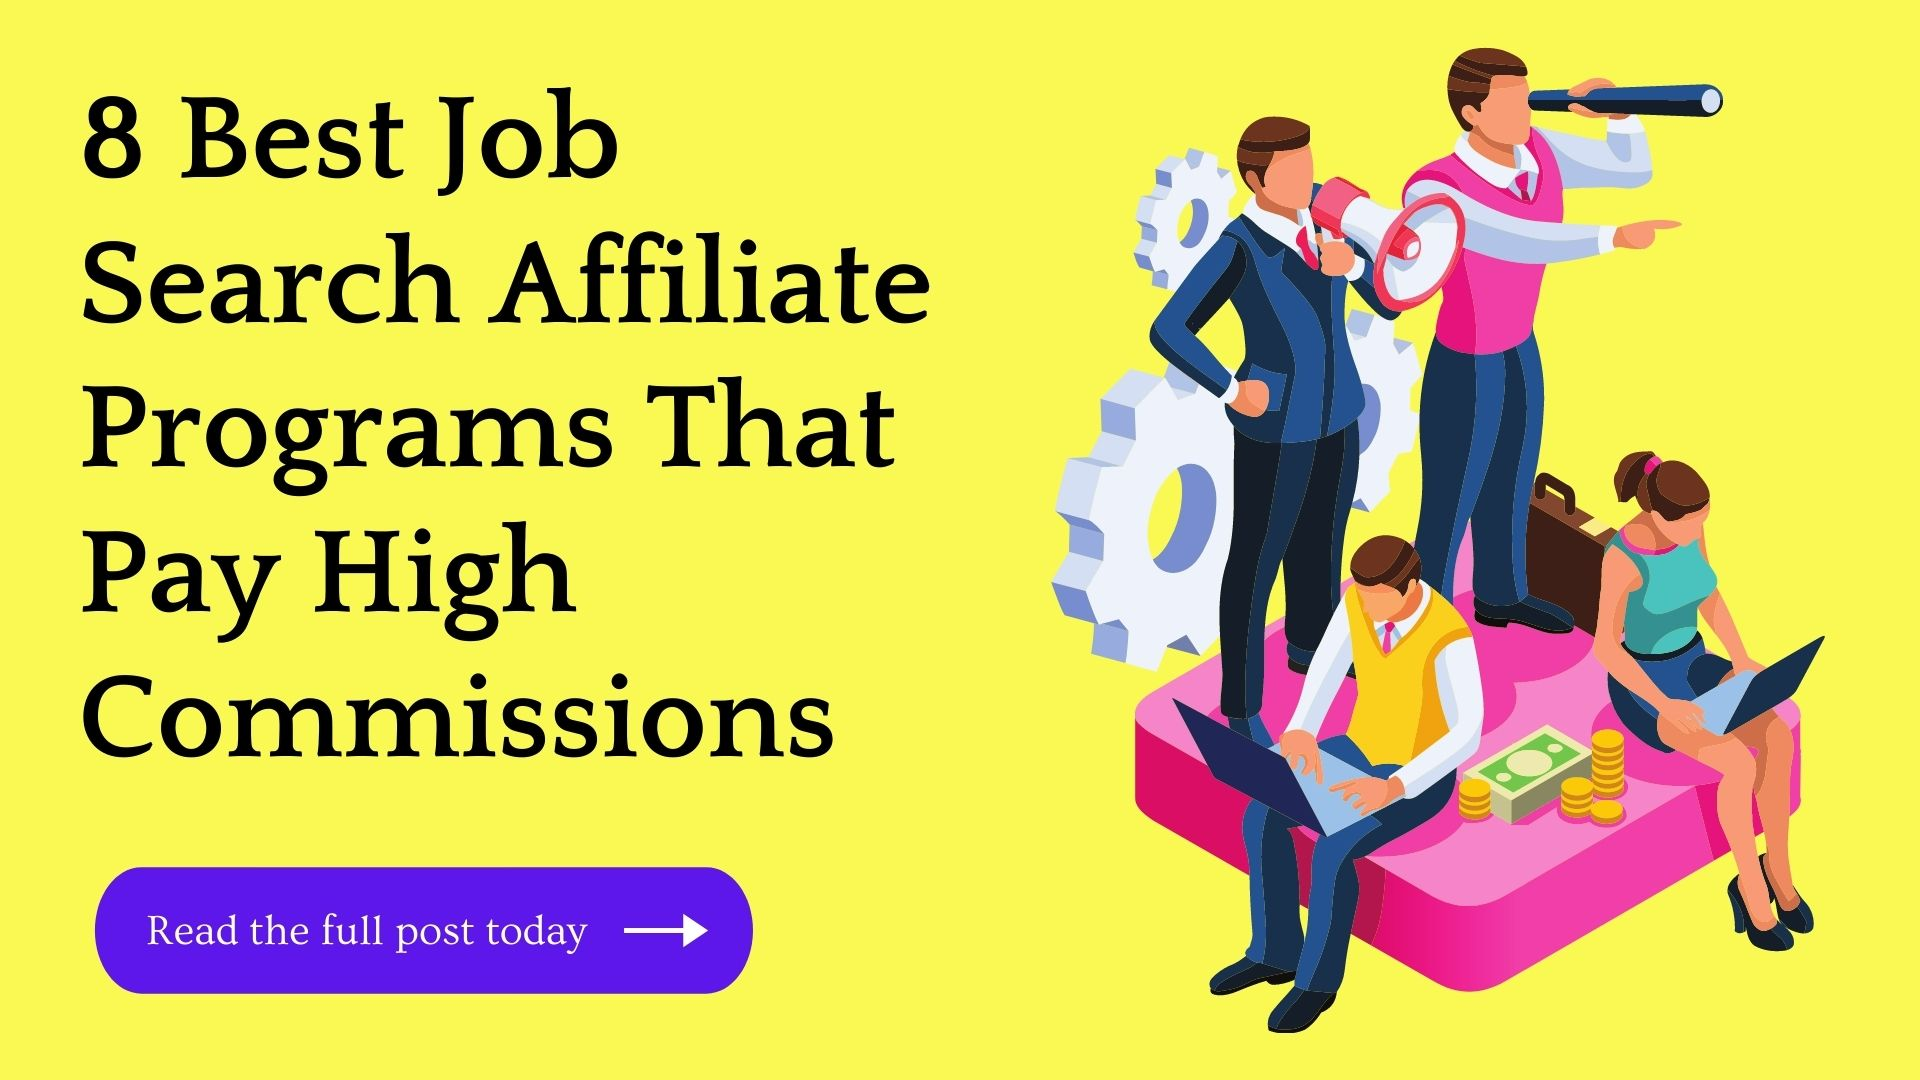 8 Best Job Search Affiliate Programs In 2021 (Updated)